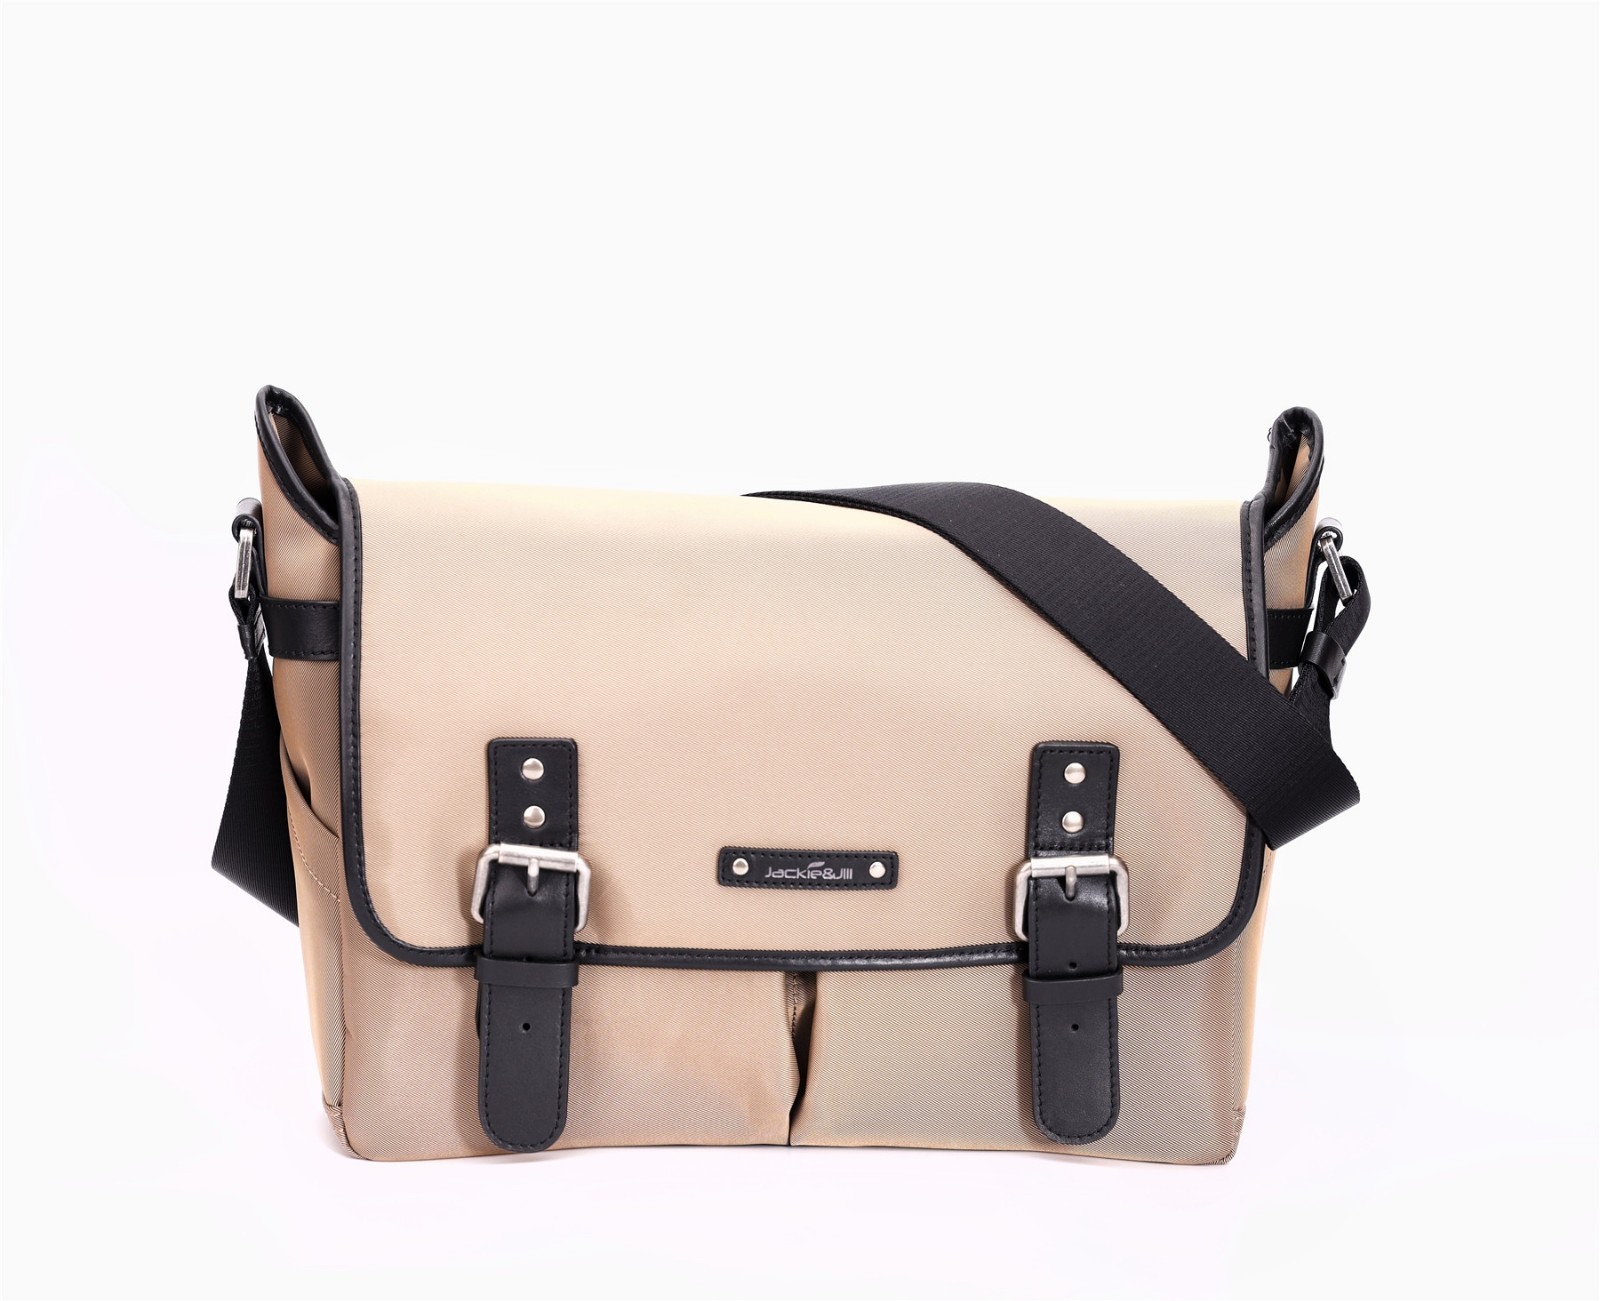 GF bags-Best Leather Messenger Bag Supplier, Mens Fashion Messenger Bag | Gf Bags